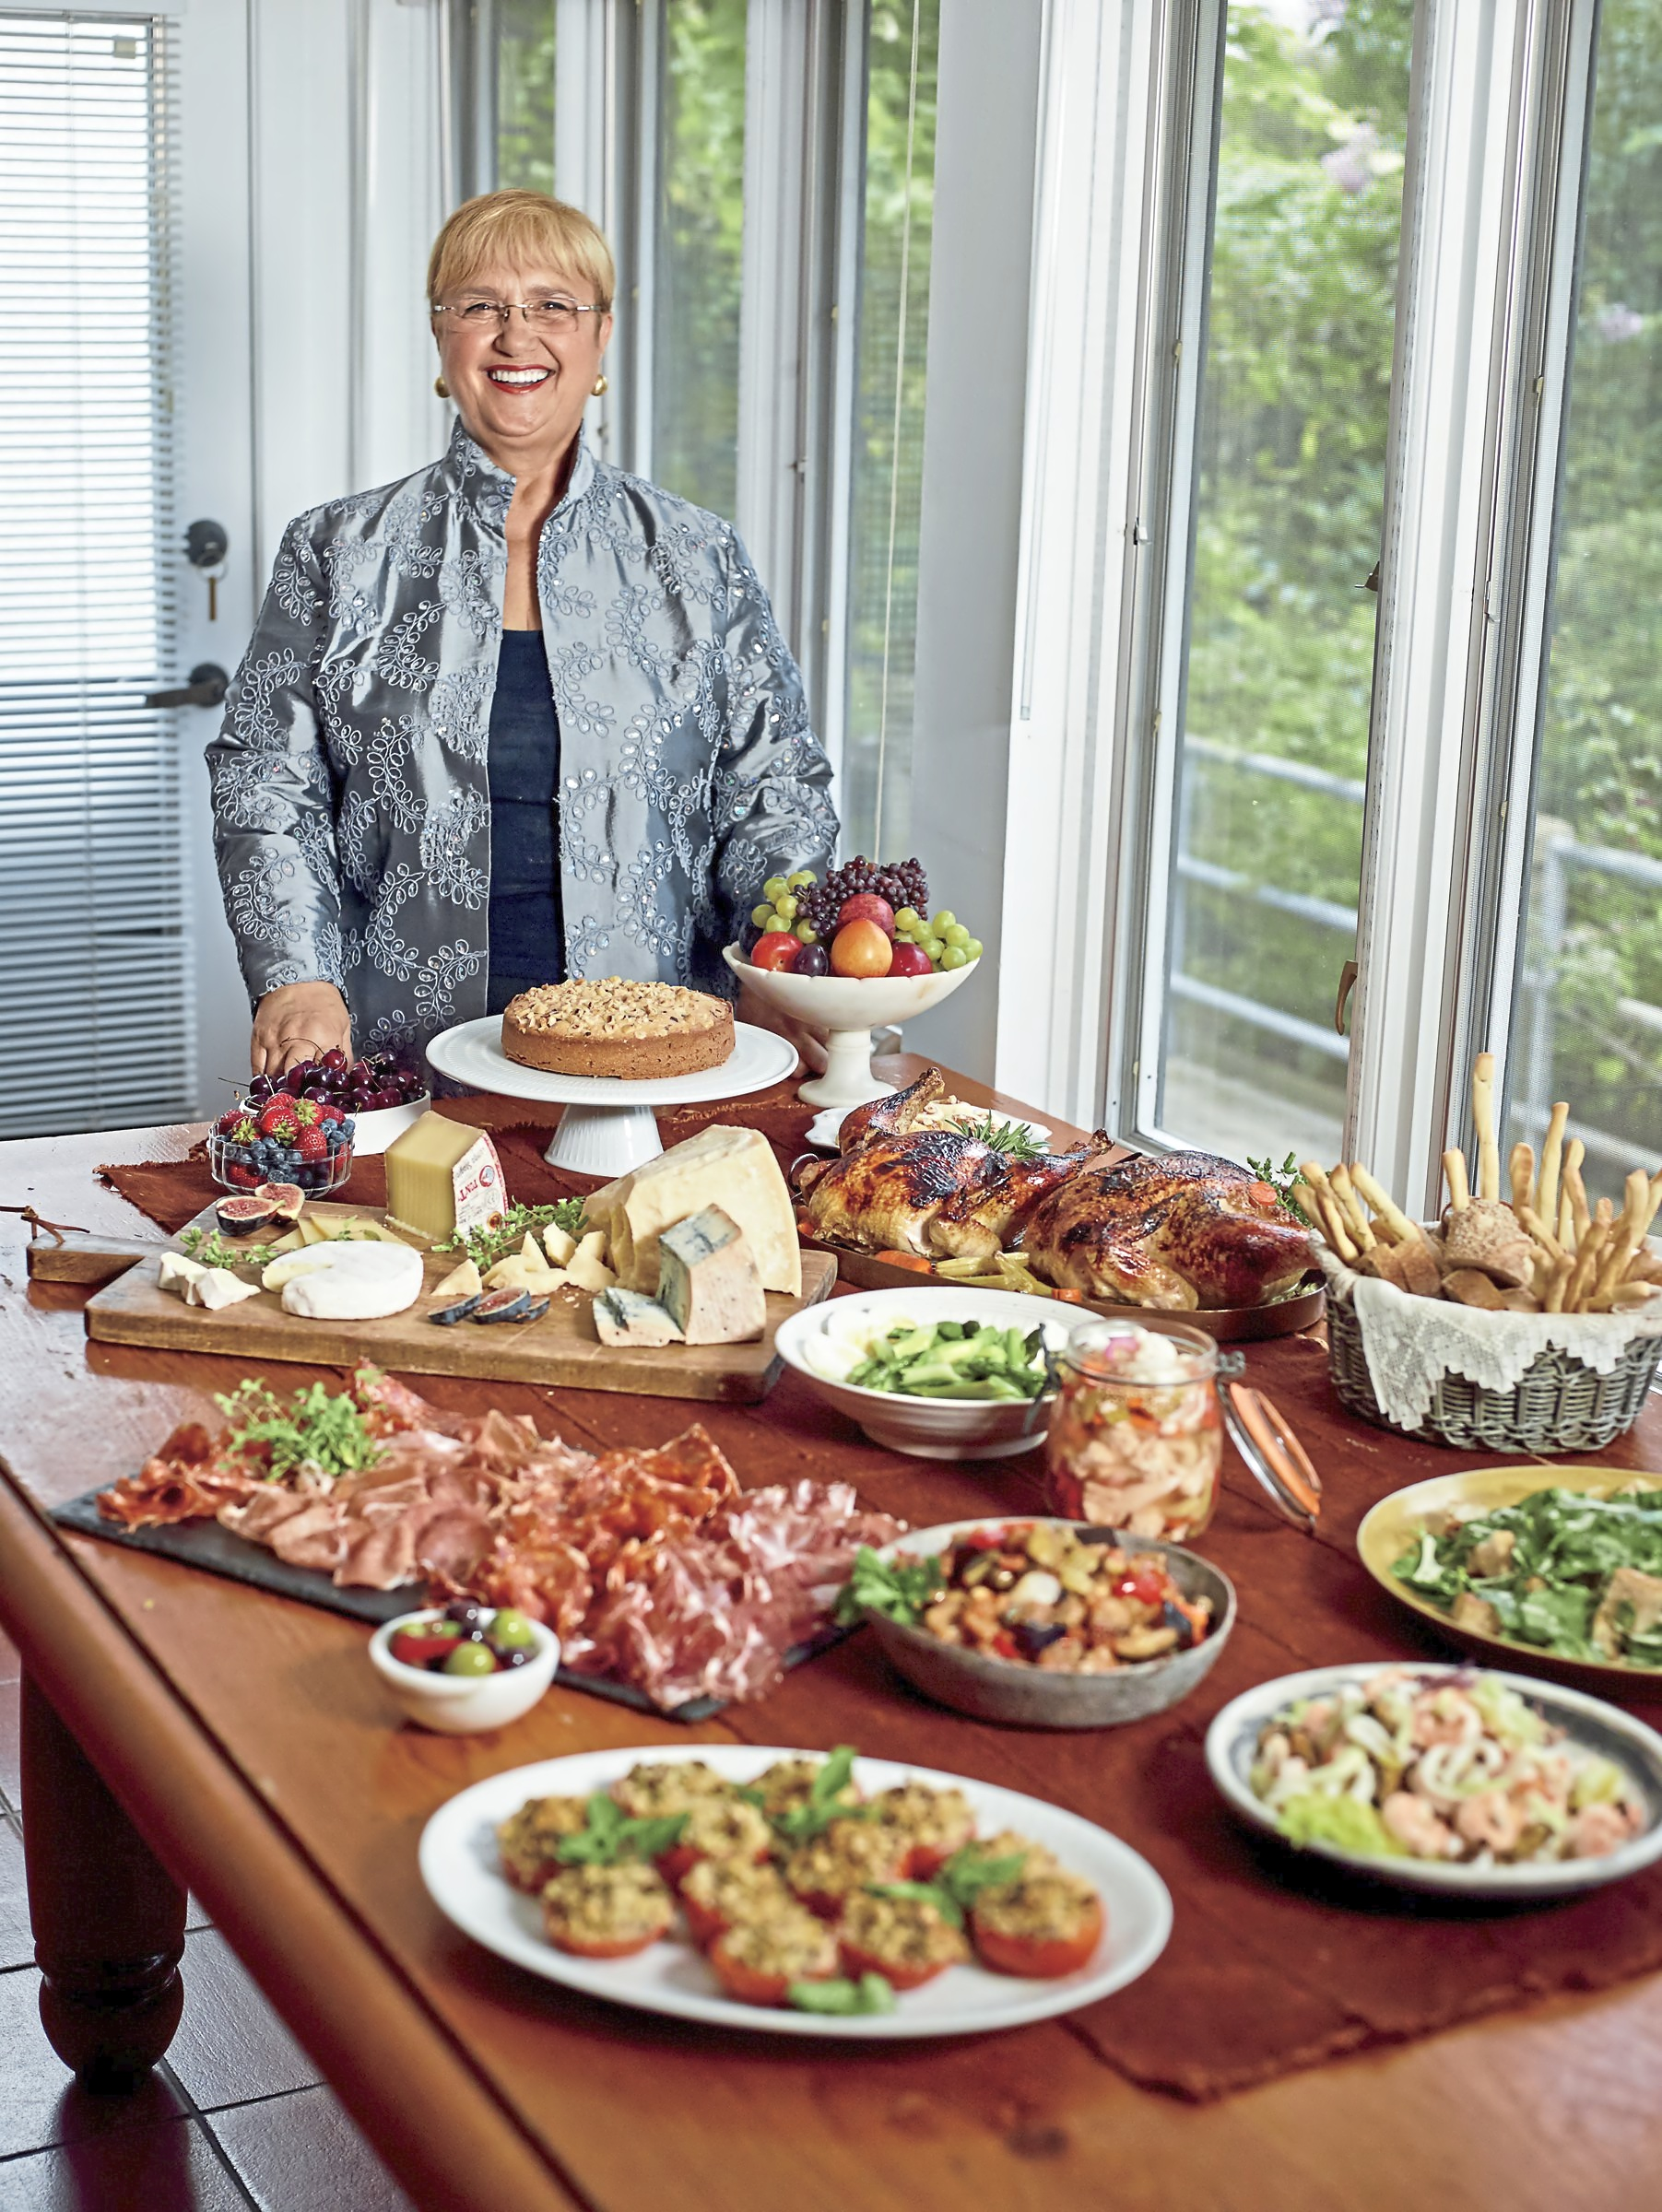 bastianich antipasto buffet holiday Lidia Bastianich says her favorite way to start off holiday meals is by serving antipasto as a buffet.